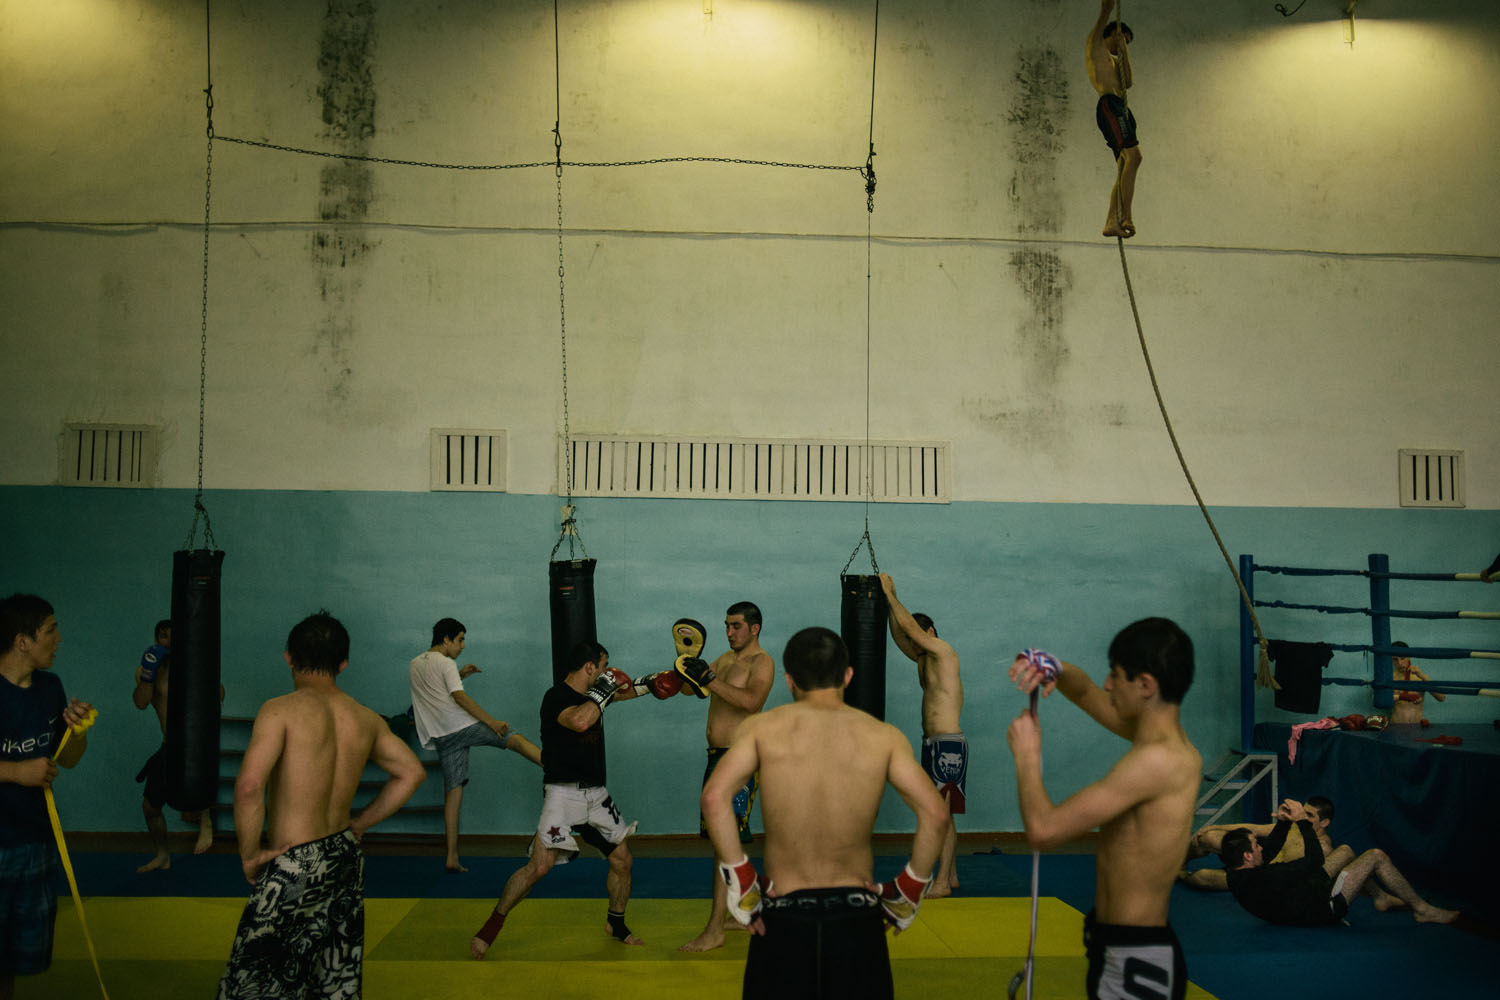 May 14, 2013. Youth train in one of the boxing and wrestling schools in the regional capital of Makhachkala, Russia.